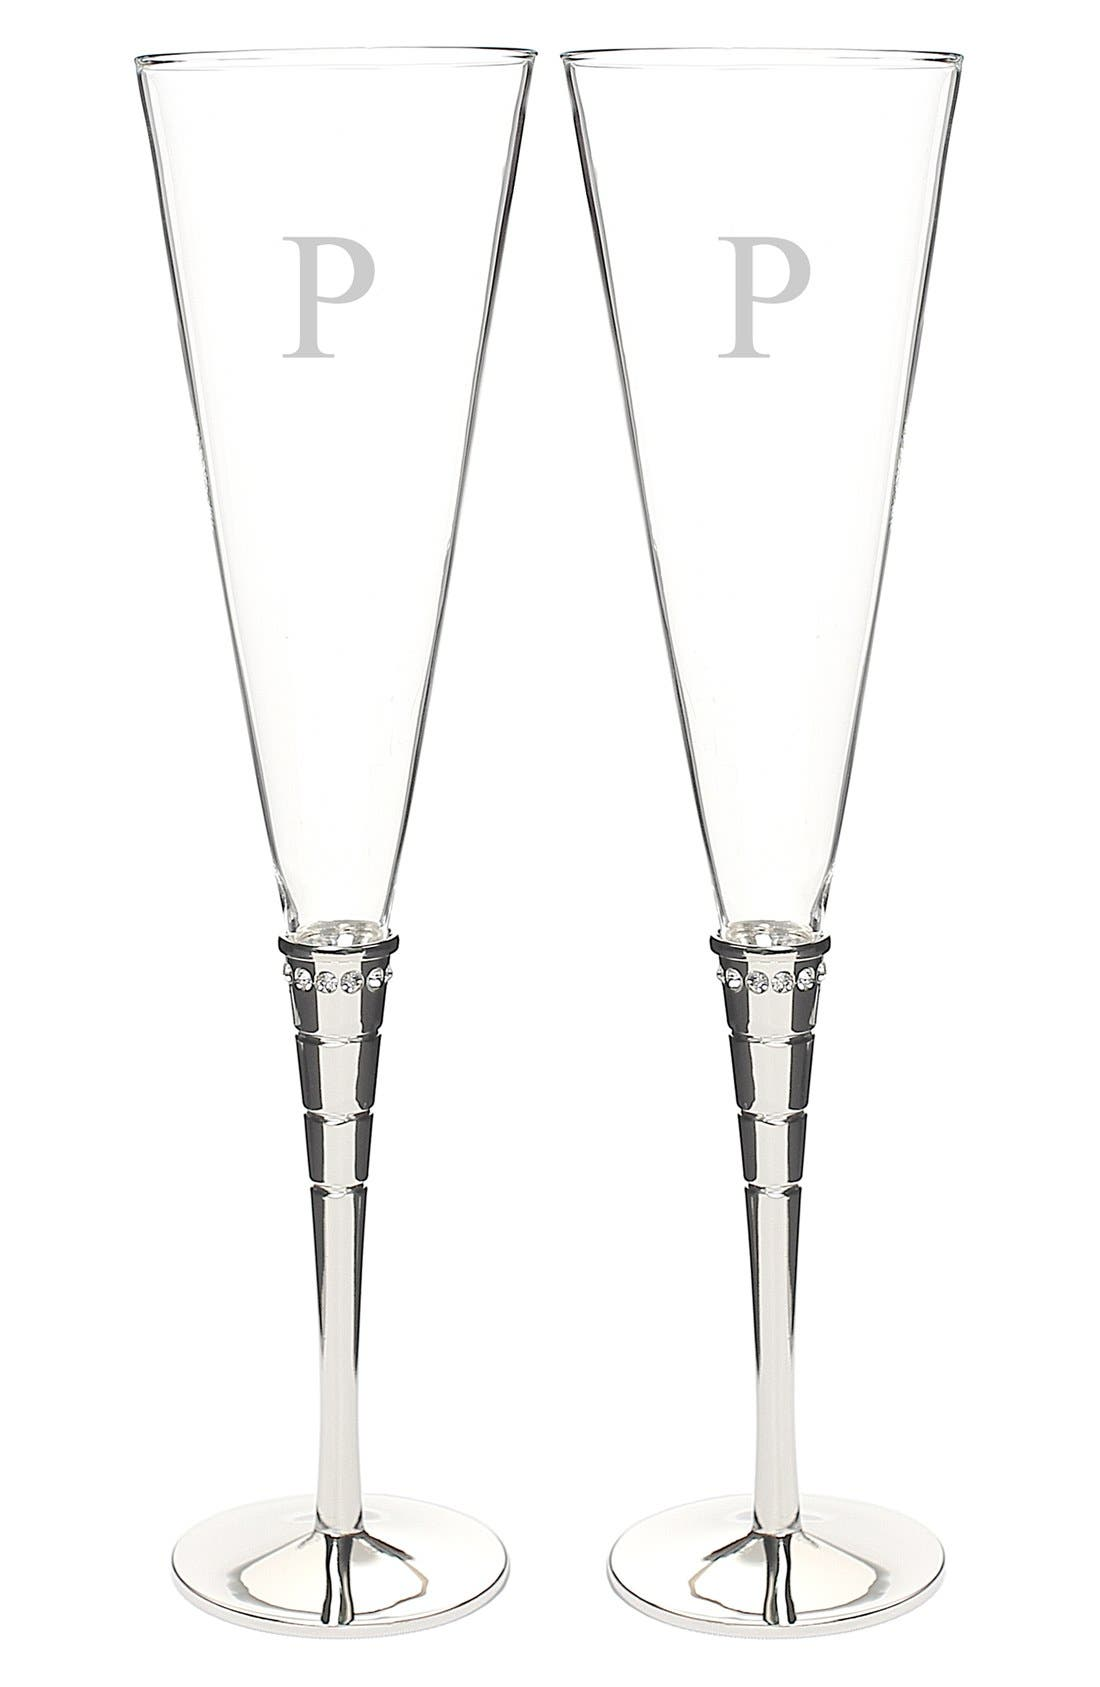 Main Image - Cathy's Concepts 'Royal' Personalized Champagne Flutes (Set of 2)